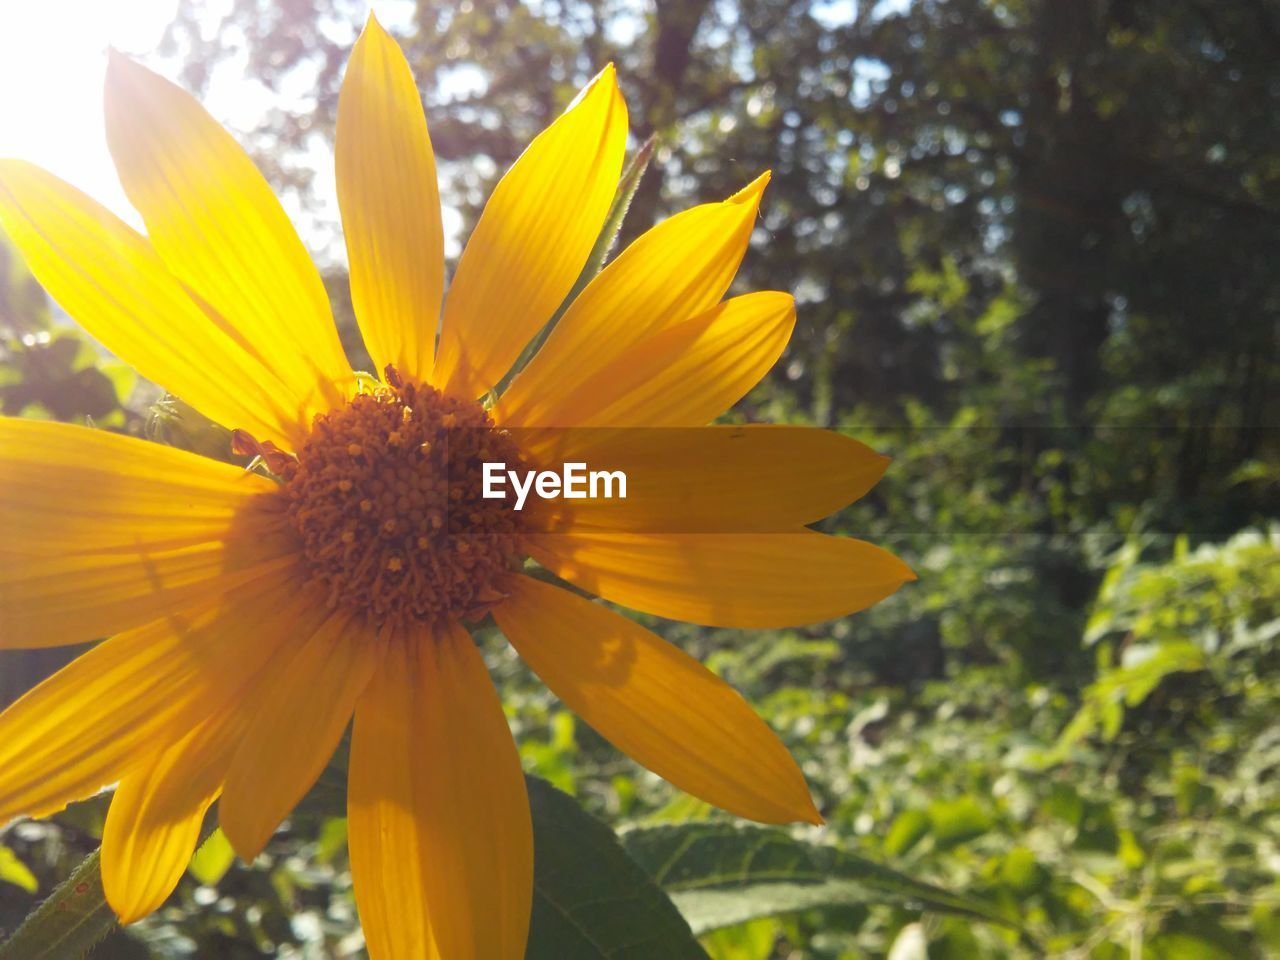 flowering plant, flower, fragility, vulnerability, growth, petal, plant, freshness, beauty in nature, close-up, flower head, inflorescence, yellow, focus on foreground, day, nature, no people, pollen, outdoors, gazania